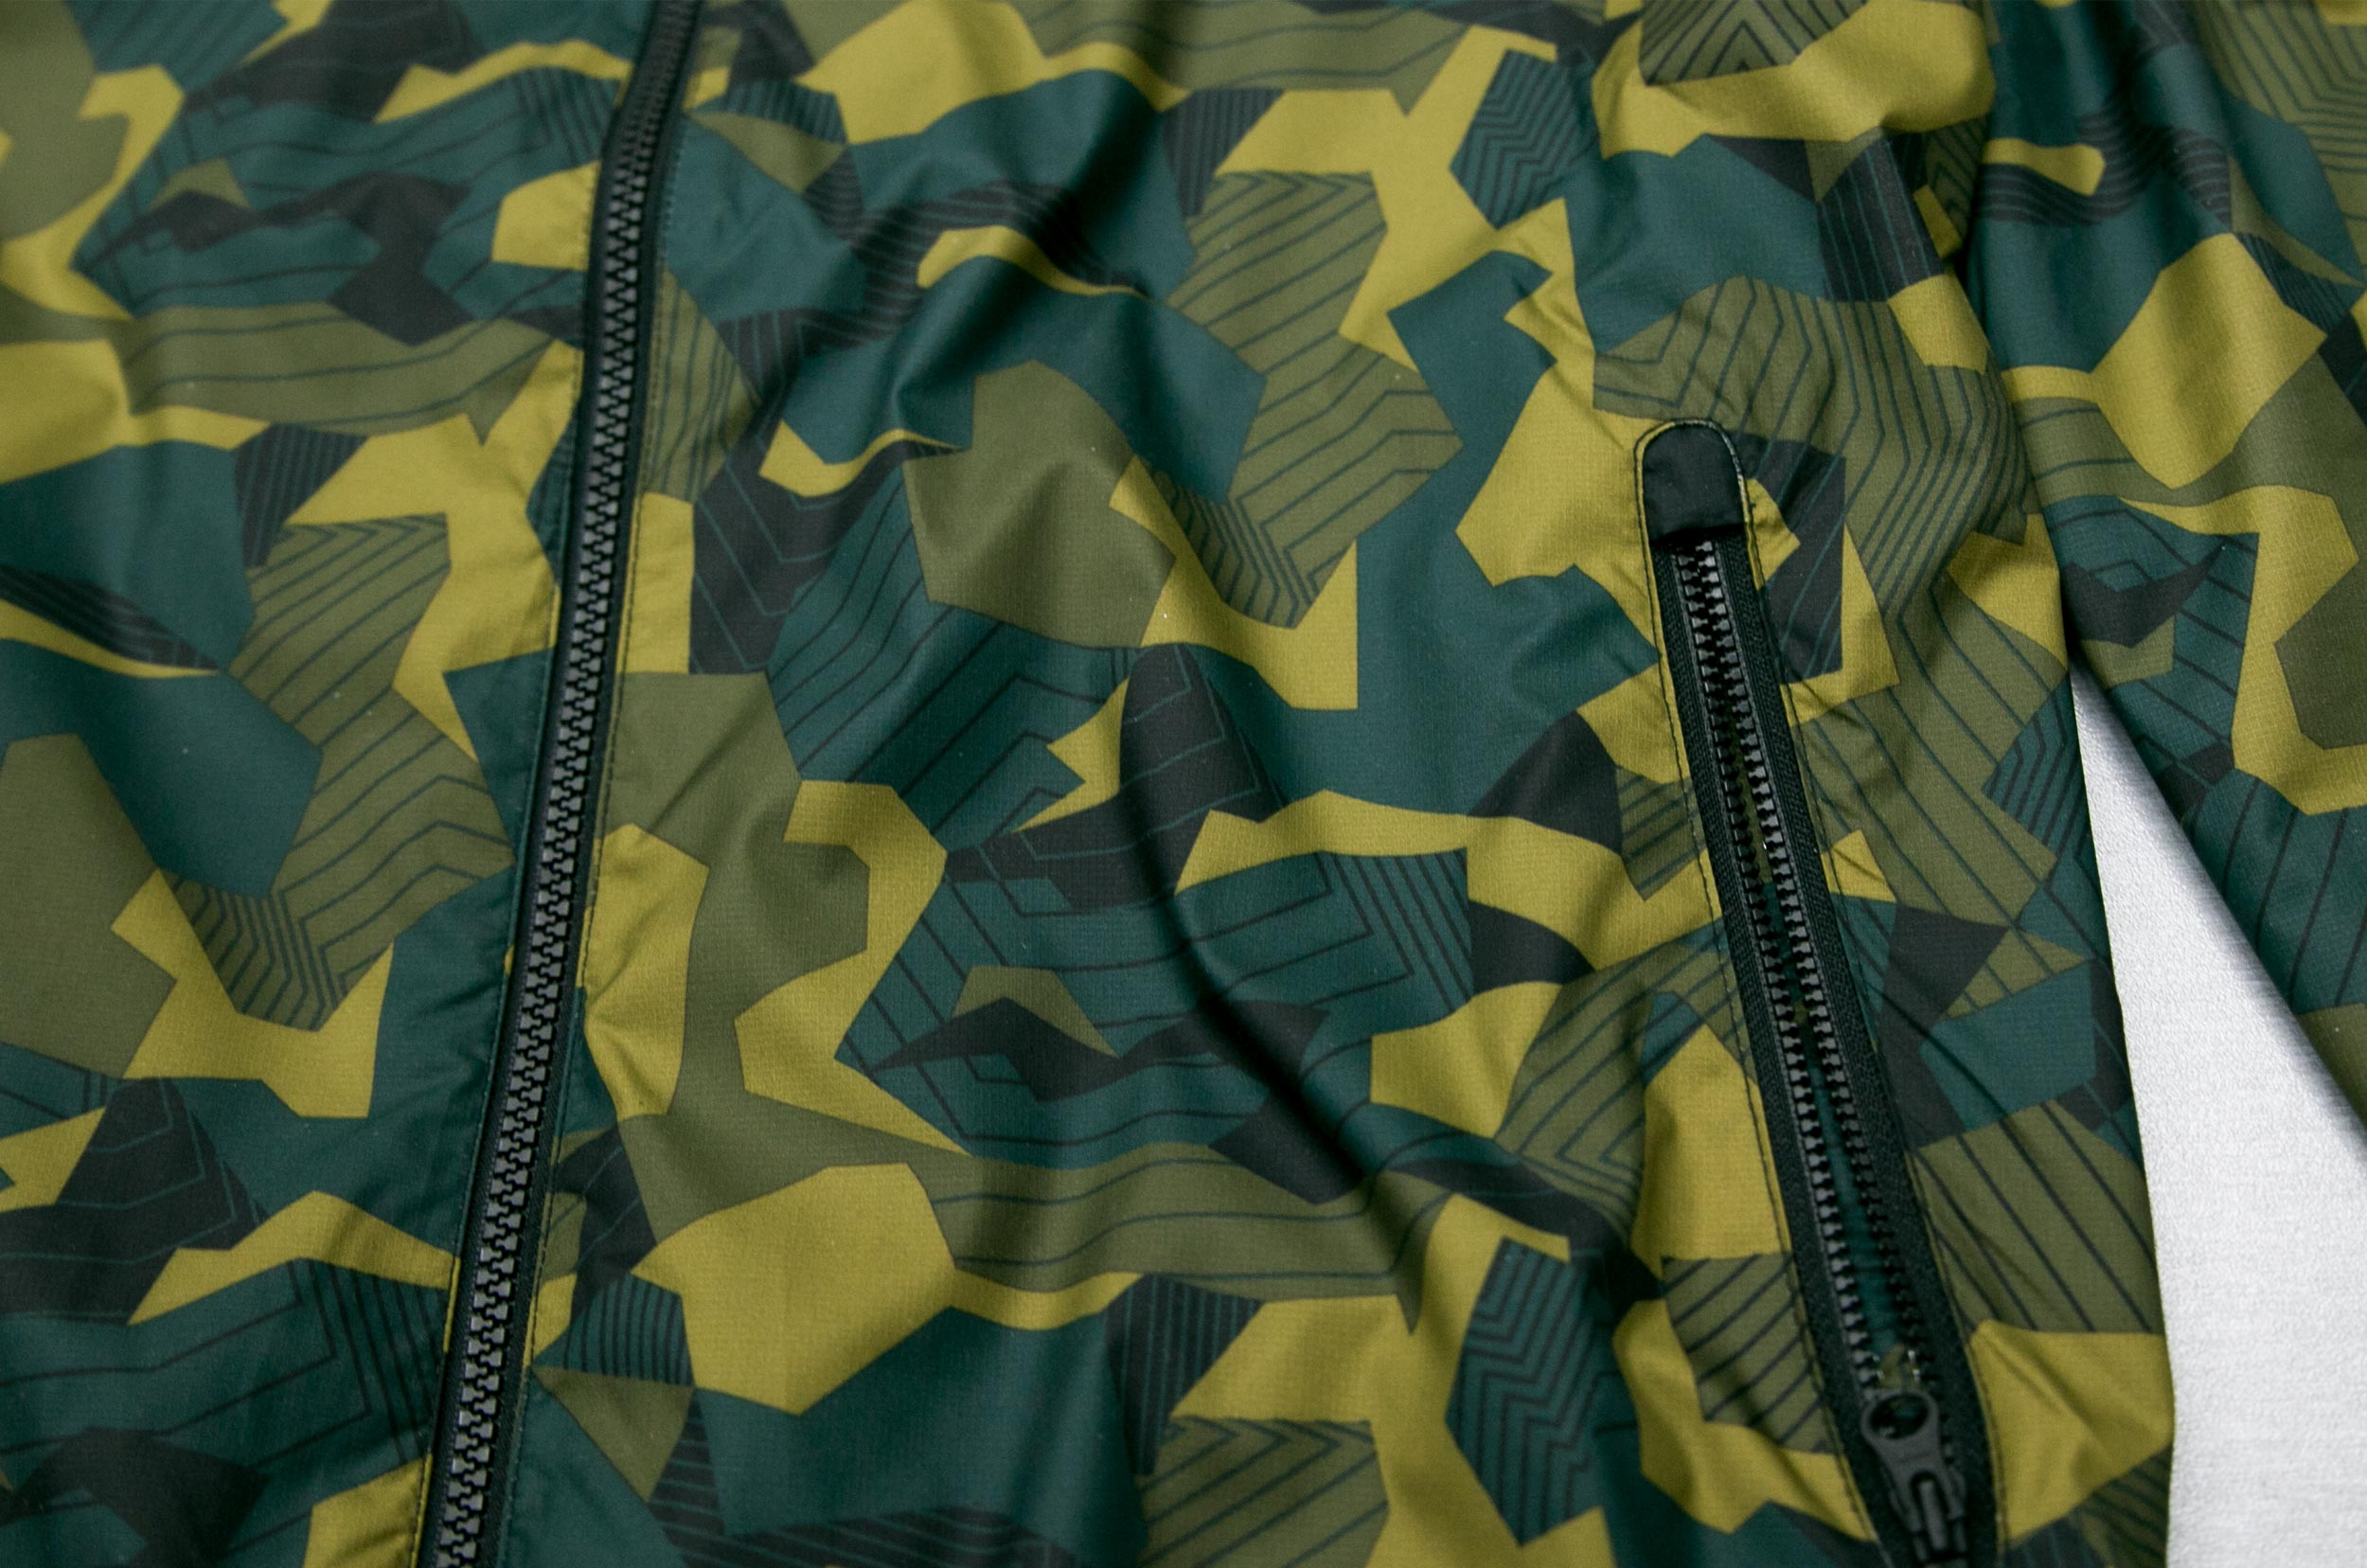 NIKE Badlands Camo Windbreaker In Black AOP 823369-011 Παραλλαγή